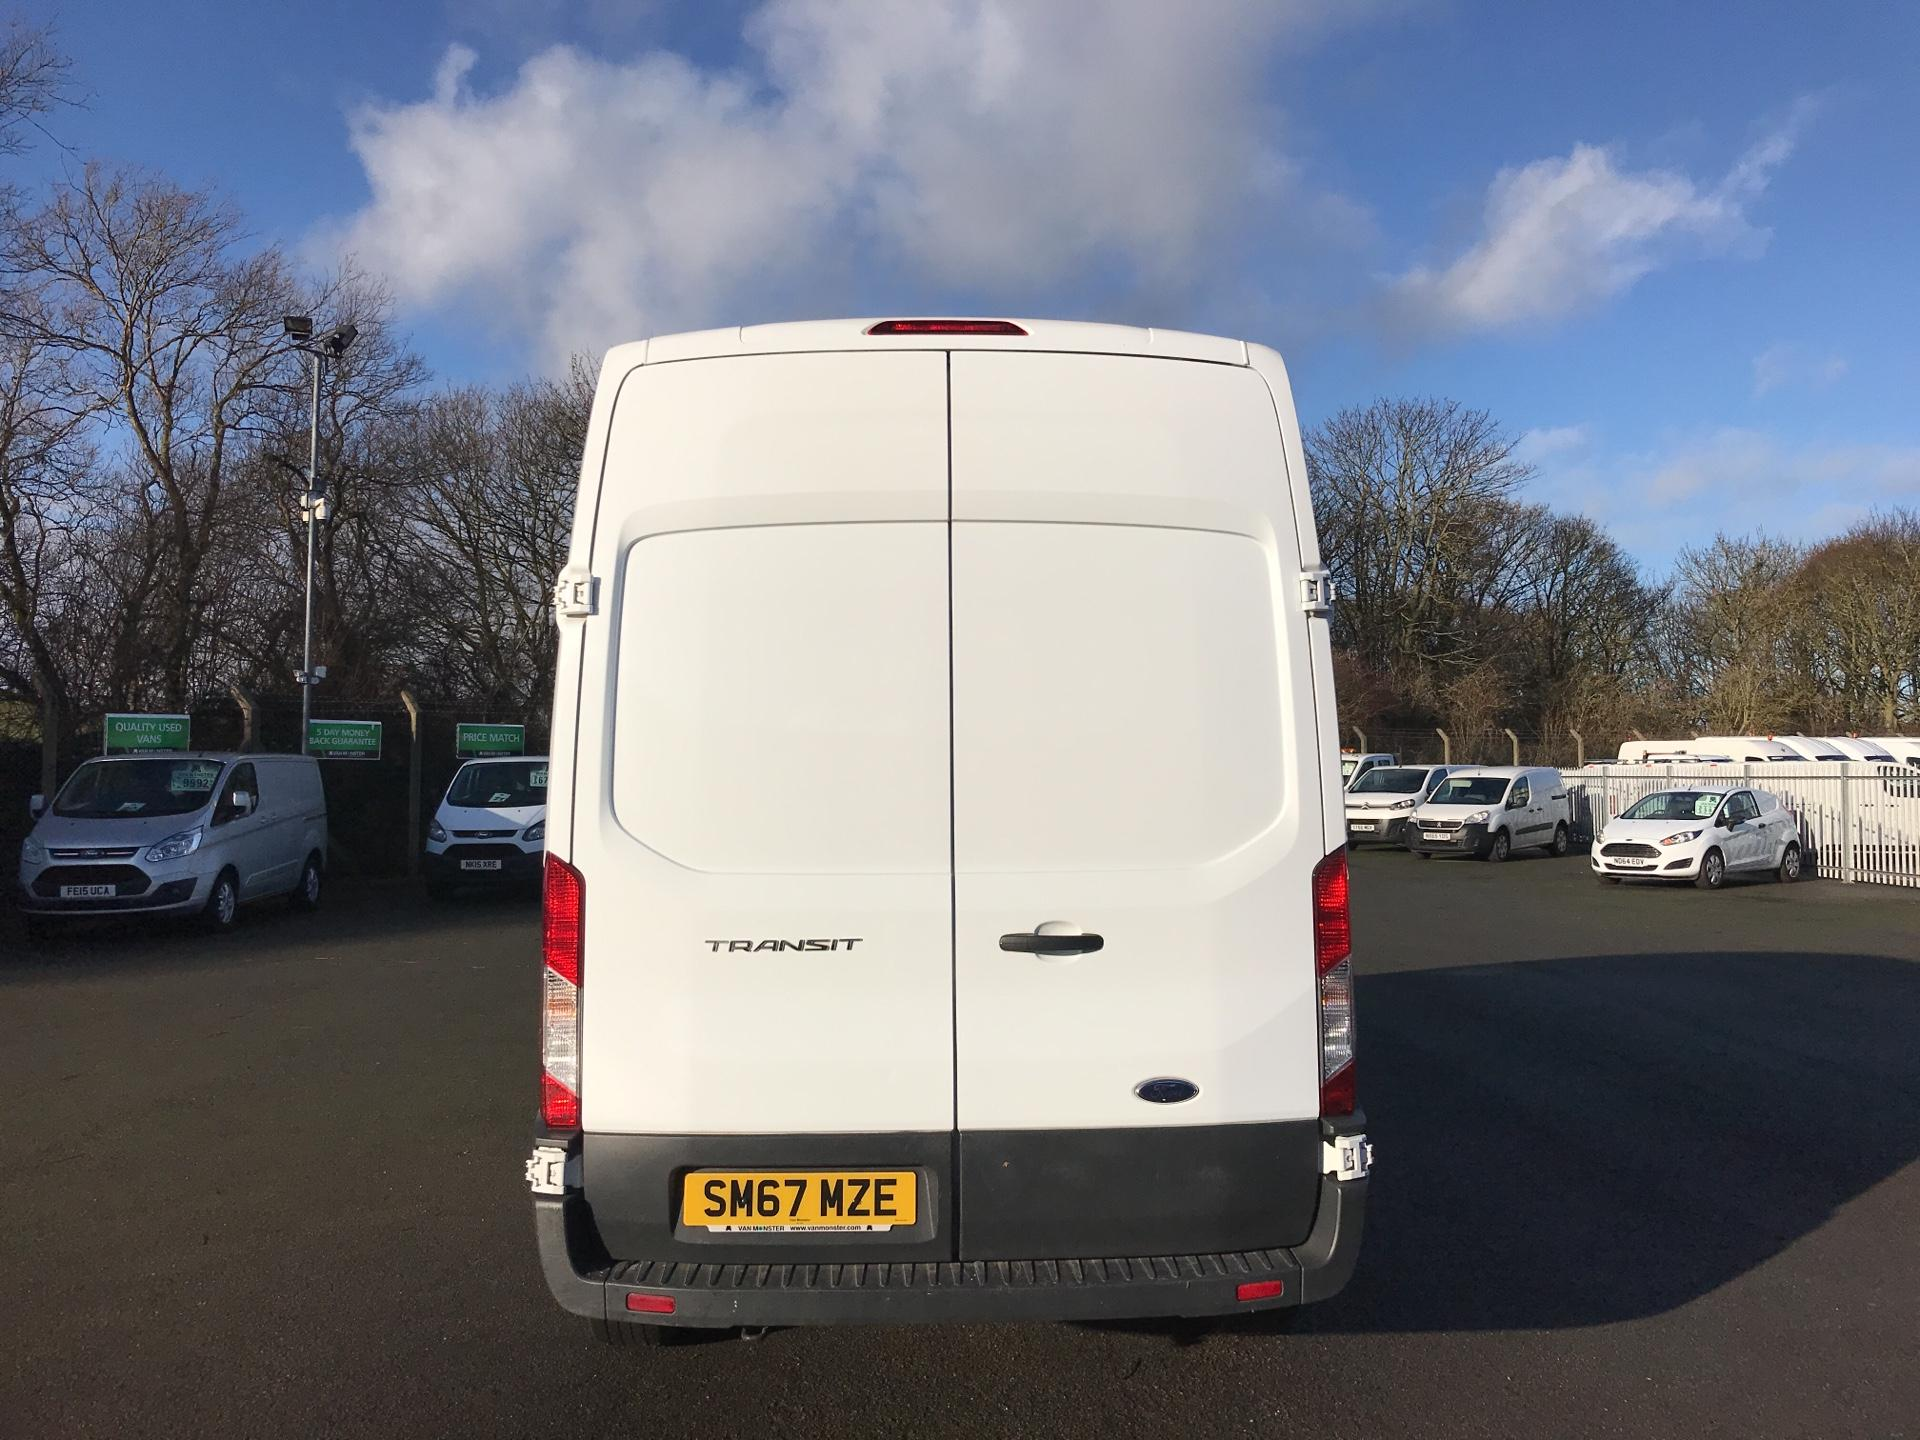 2018 Ford Transit L3 H3 VAN 130PS EURO 6  *VALUE RANGE VEHICLE - CONDITION REFLECTED IN PRICE*  (SM67MZE) Image 4